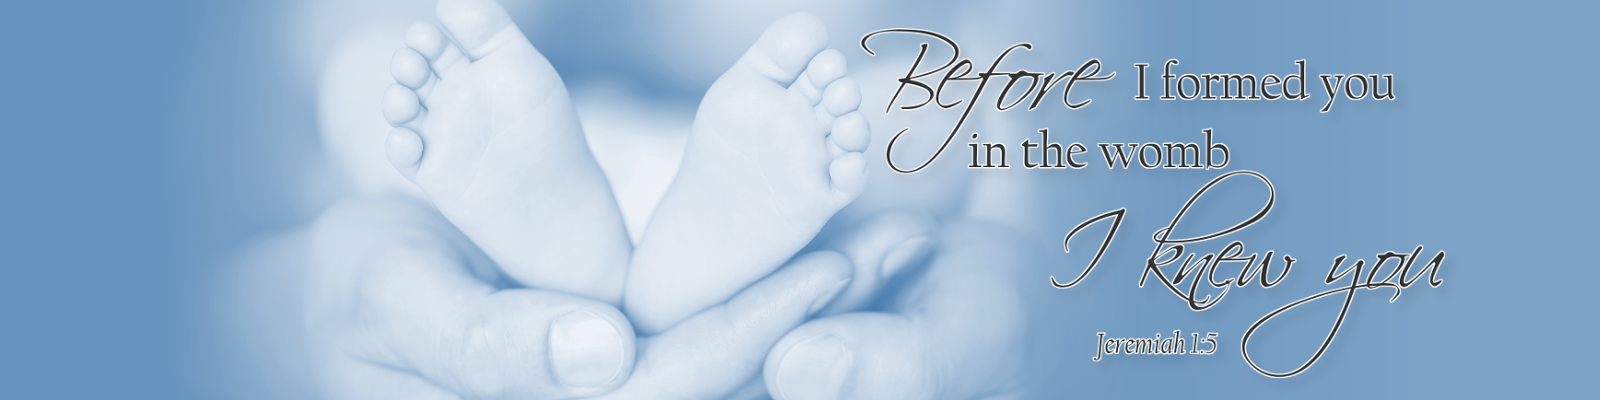 Before I formed you in the womb, I knew You. Iowa Pro-Life Action